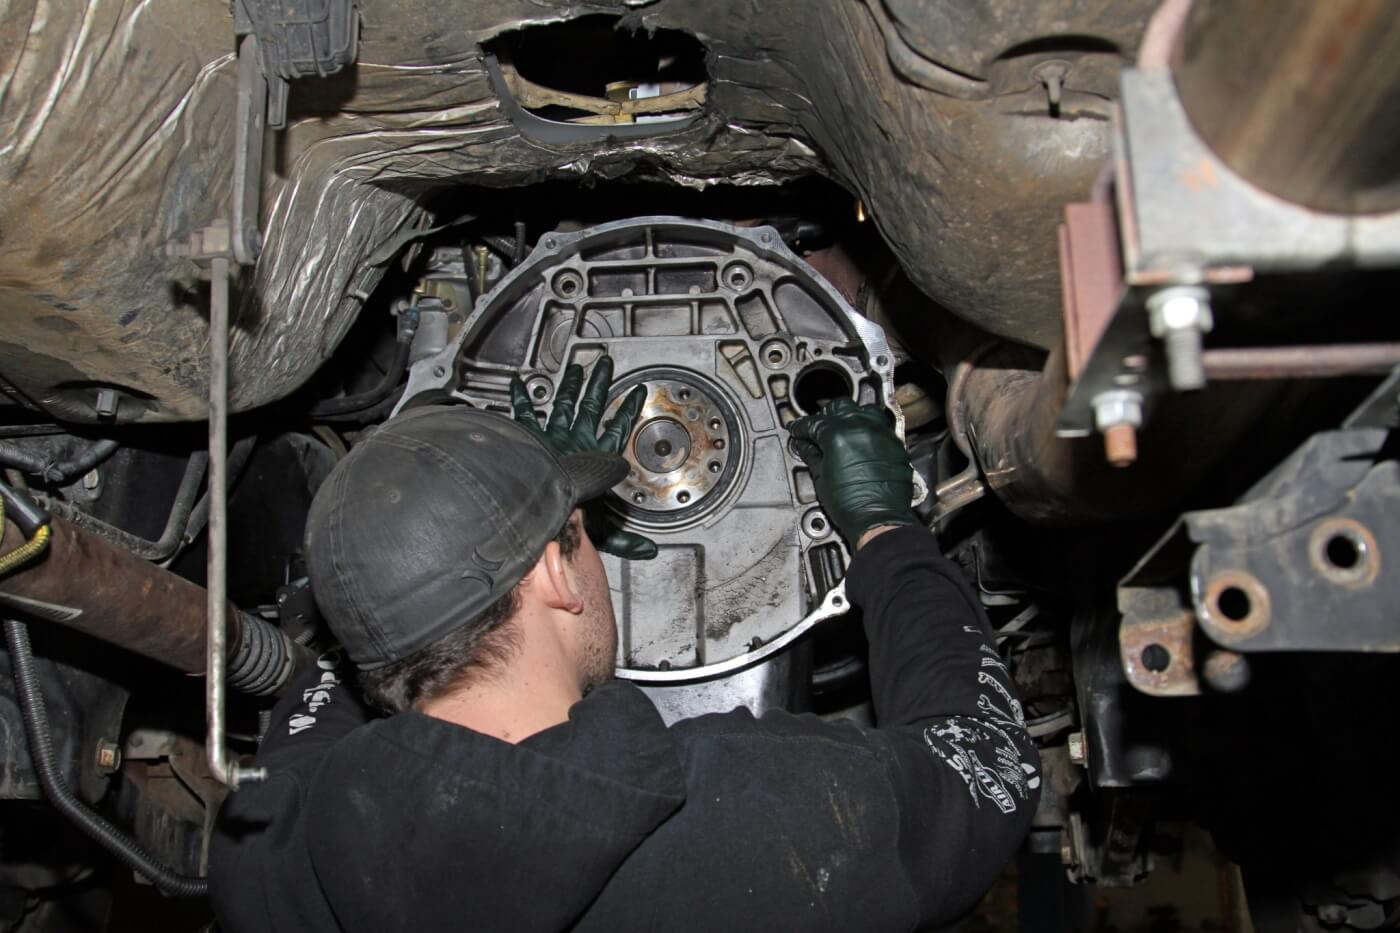 13. After the seal was replaced, Meraz installed a new camshaft seal O-ring in the motor plate and reinstalled it on the engine.